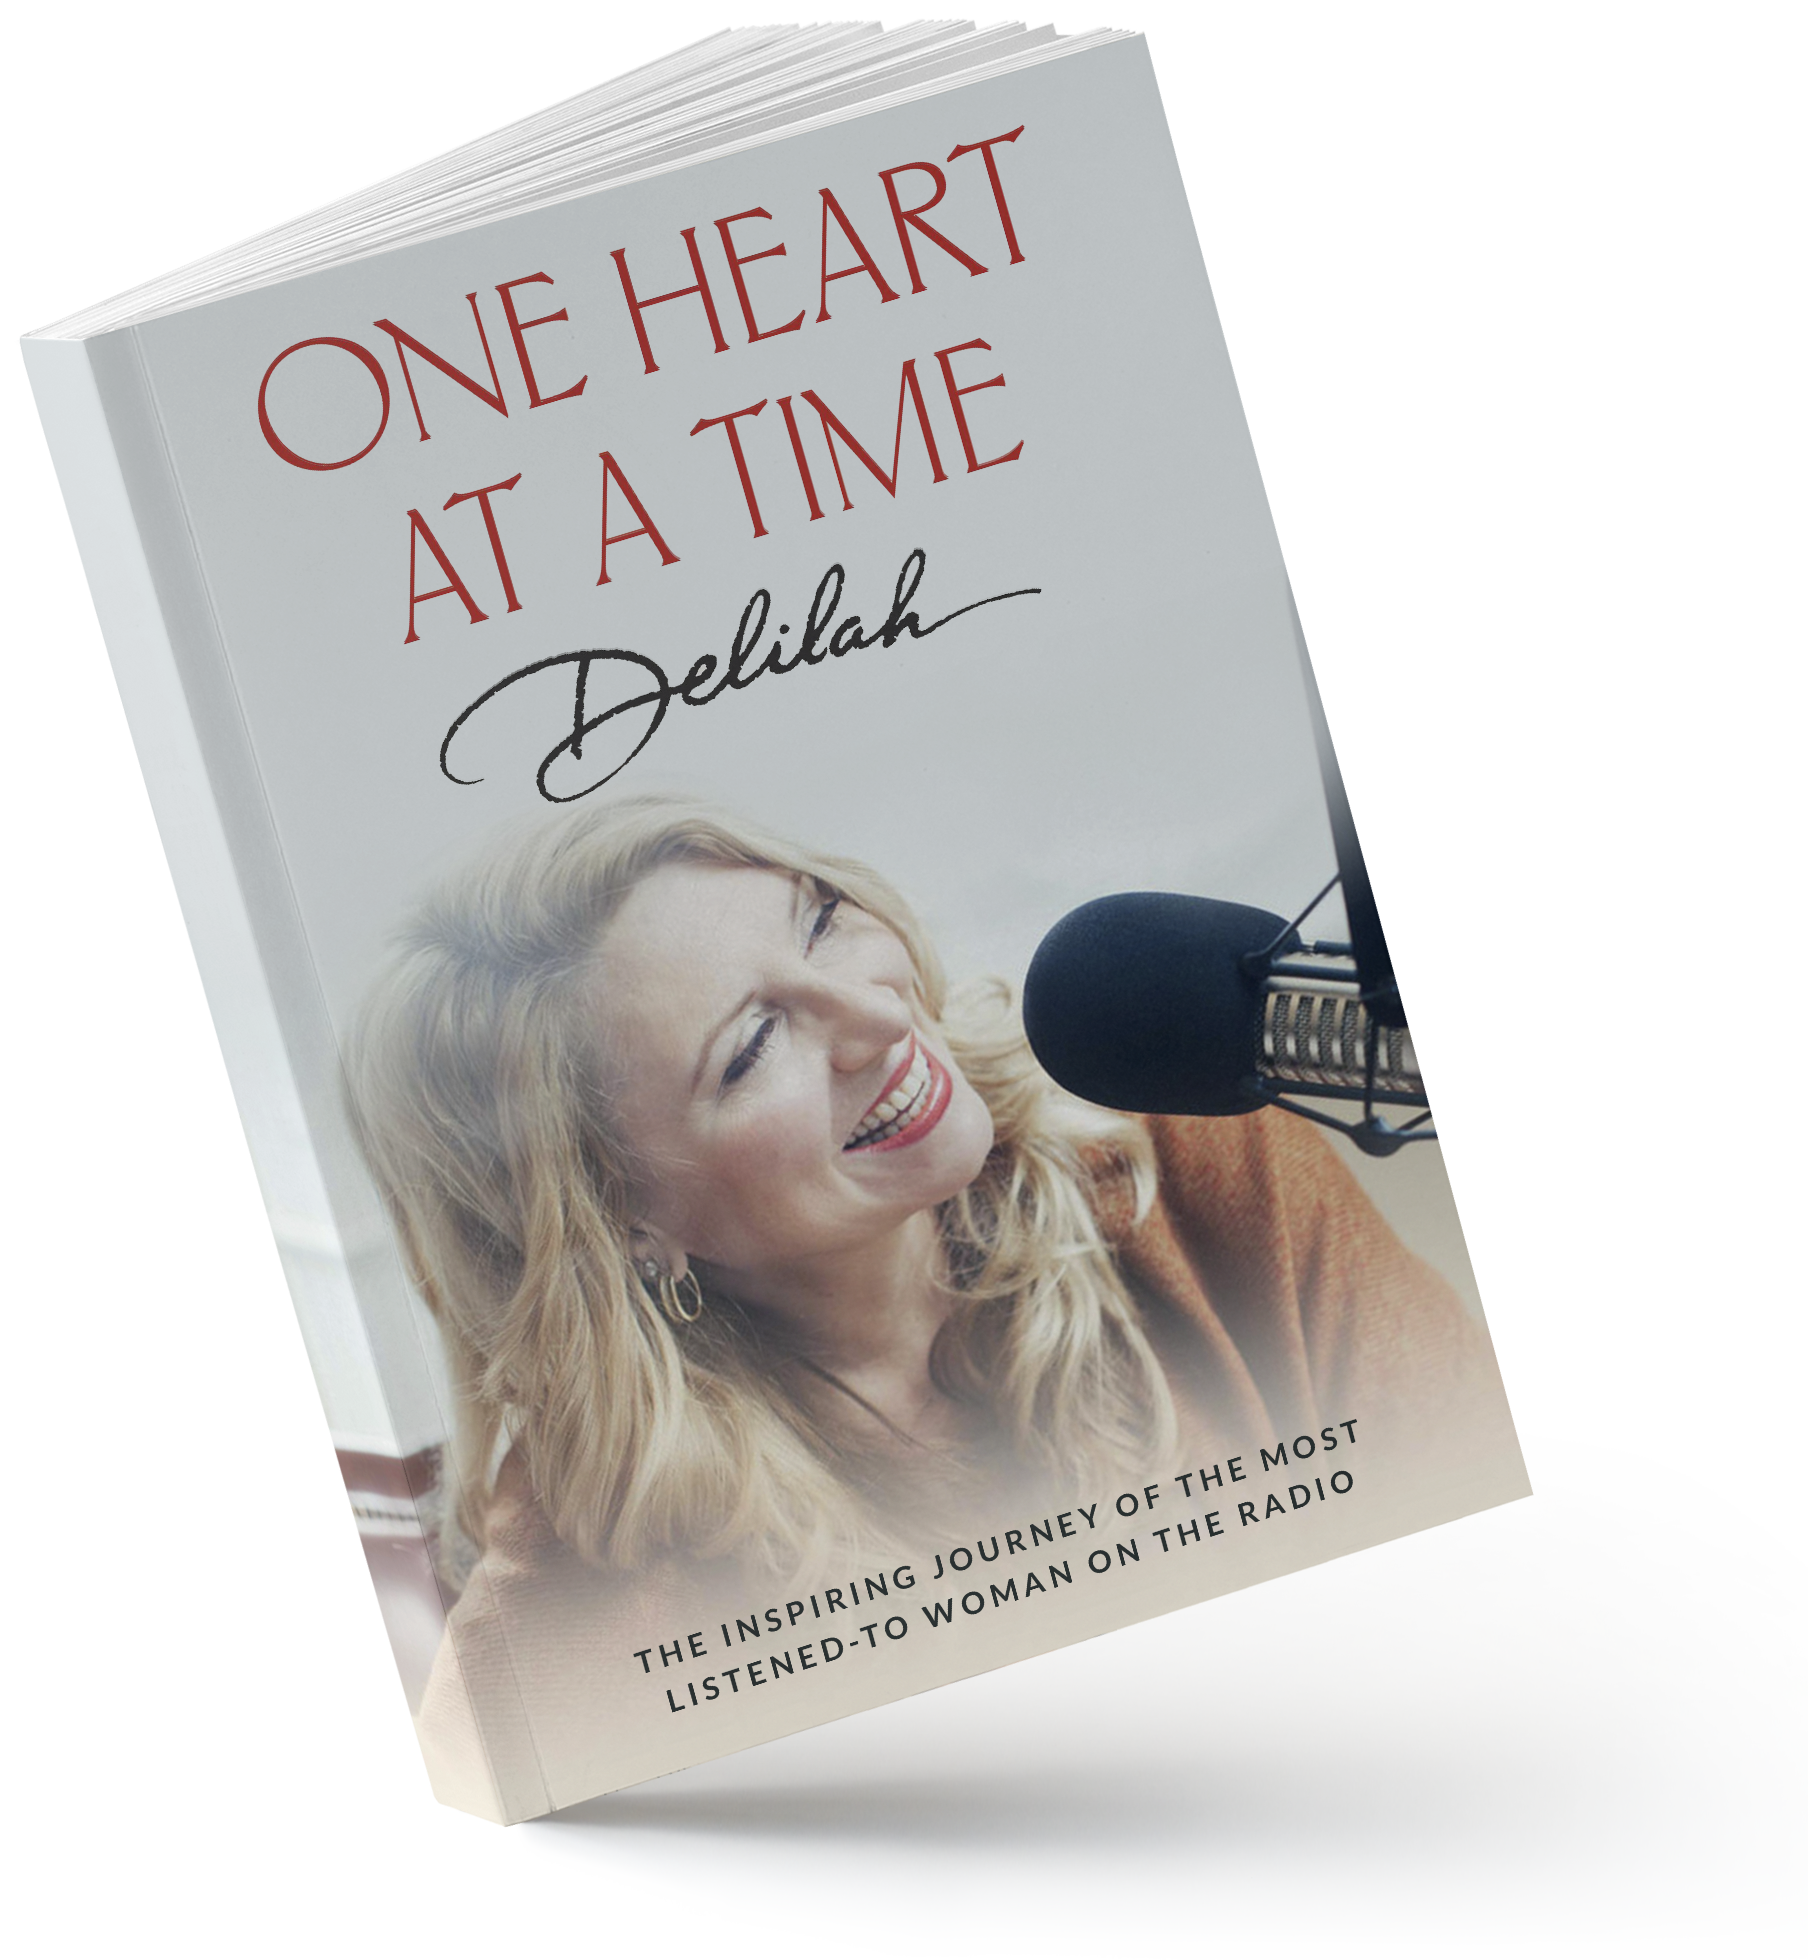 Delilah-OneHeart-Book (1).png